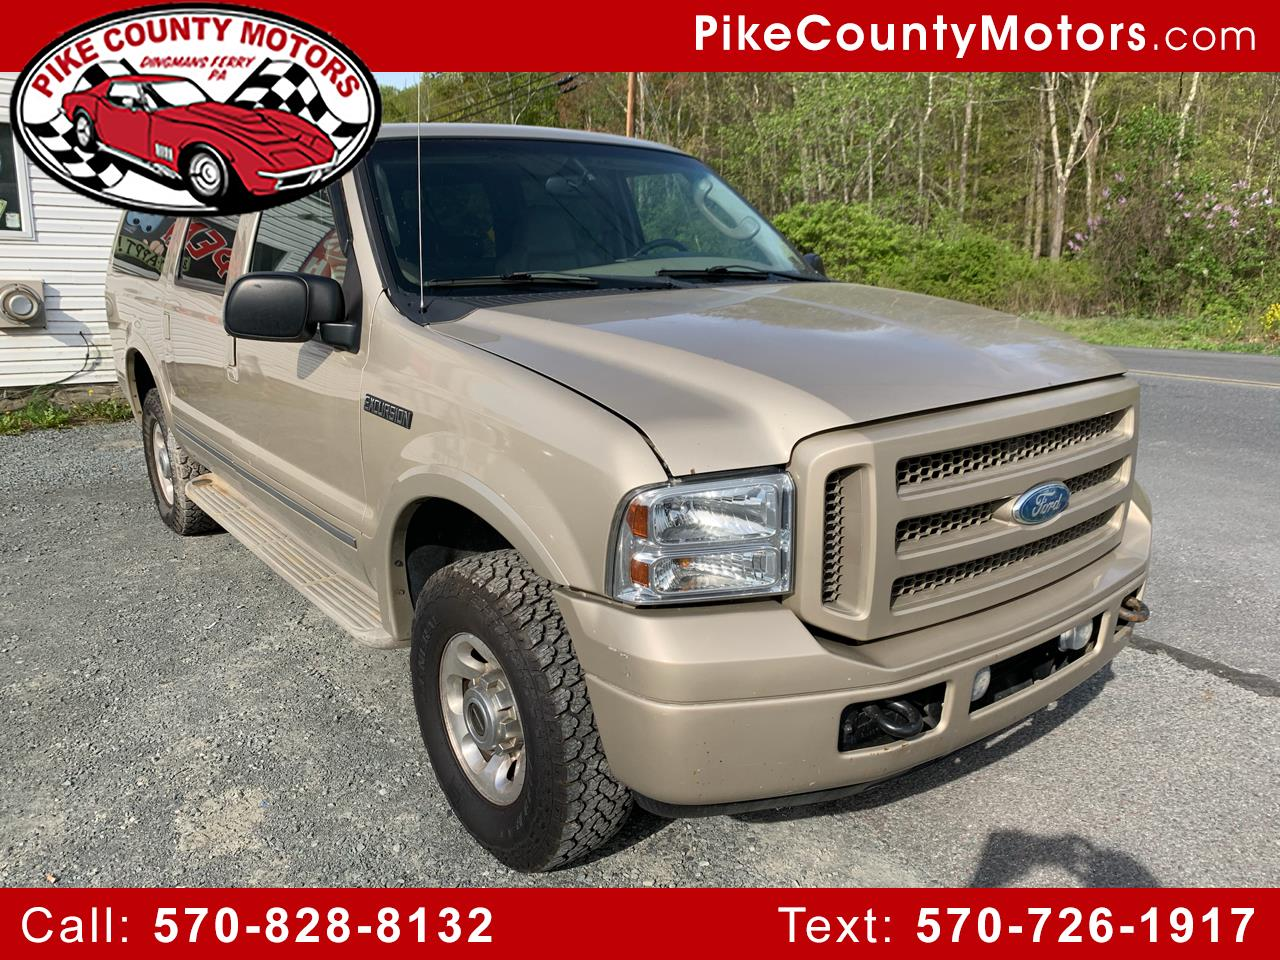 2005 Ford Excursion Limited 4WD